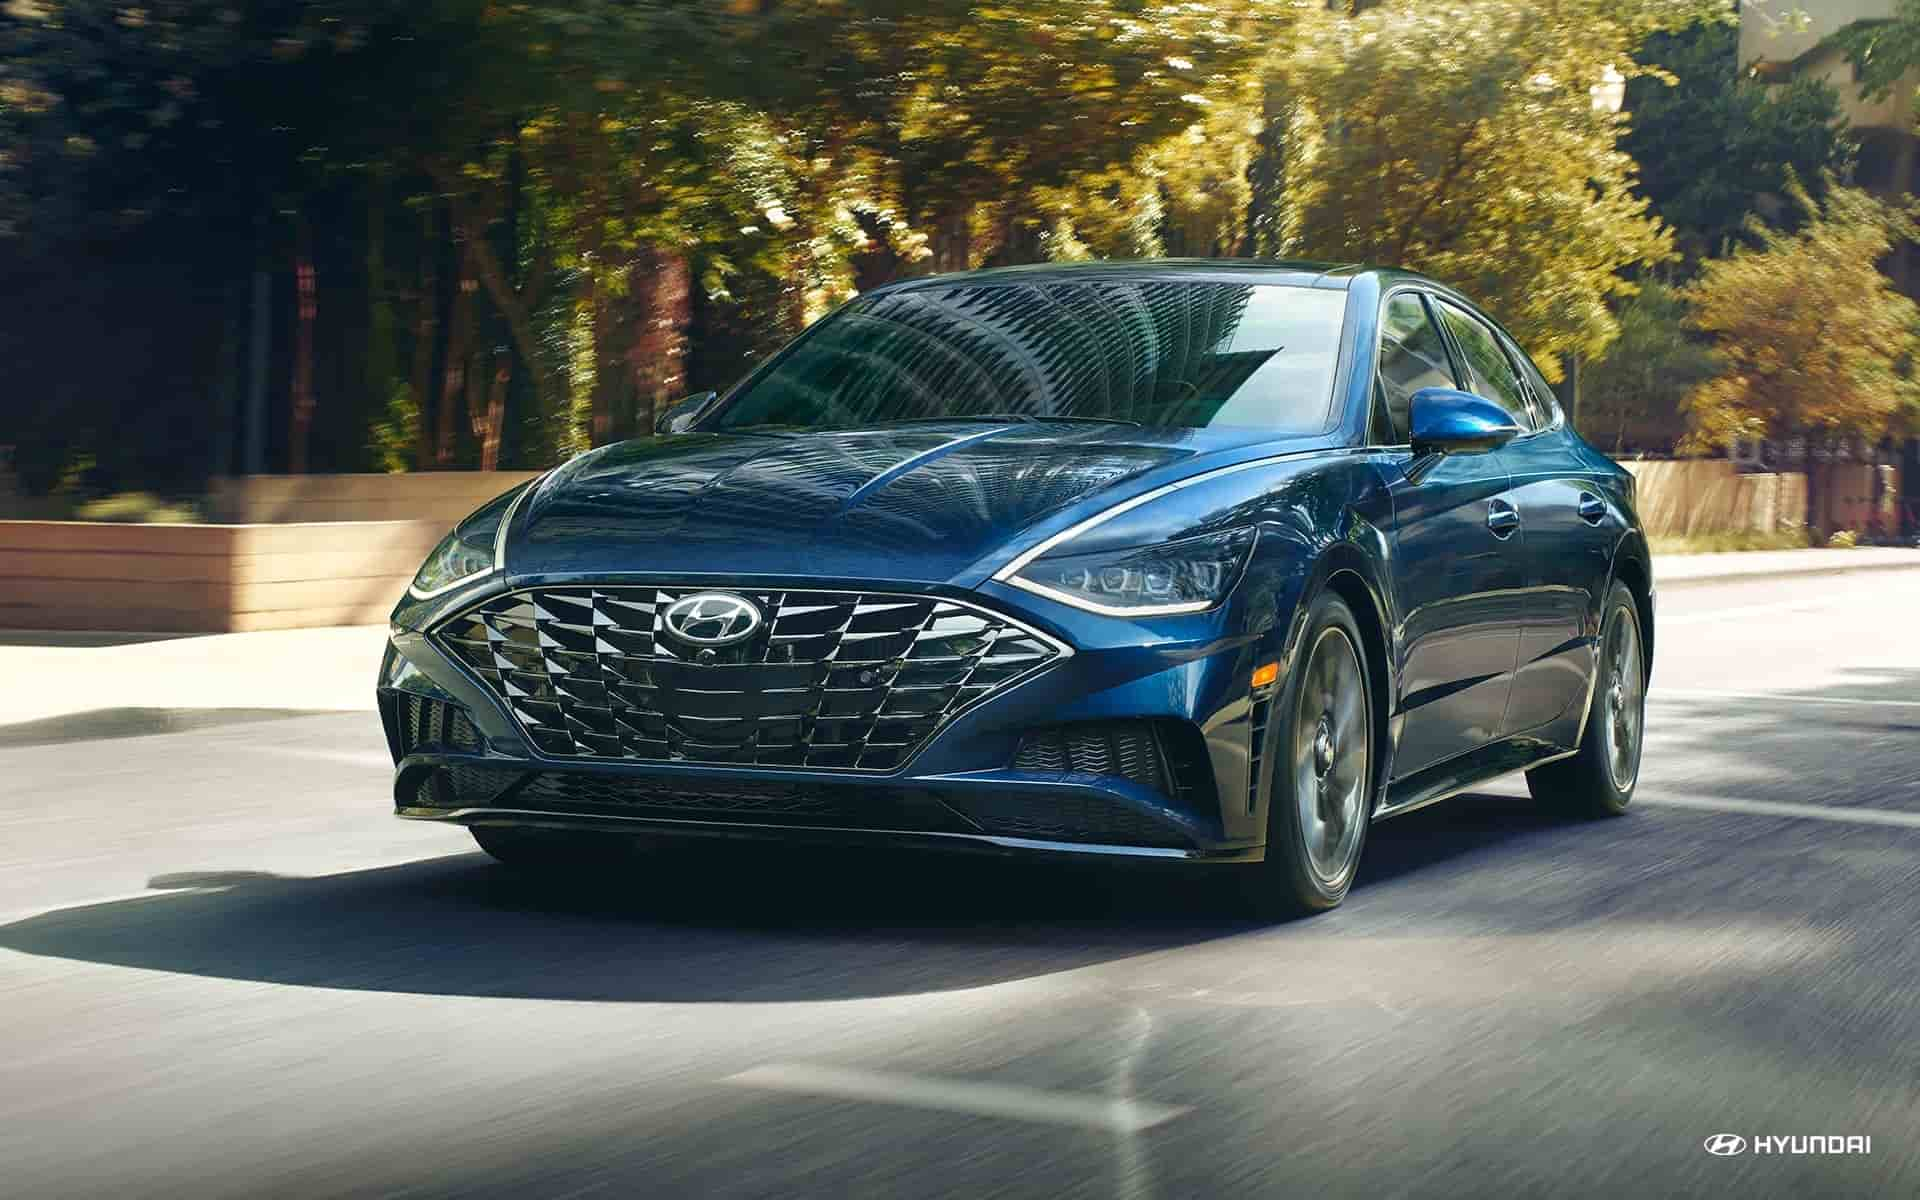 Where can I get a 2020 Hyundai Sonata Quote near Longmont CO